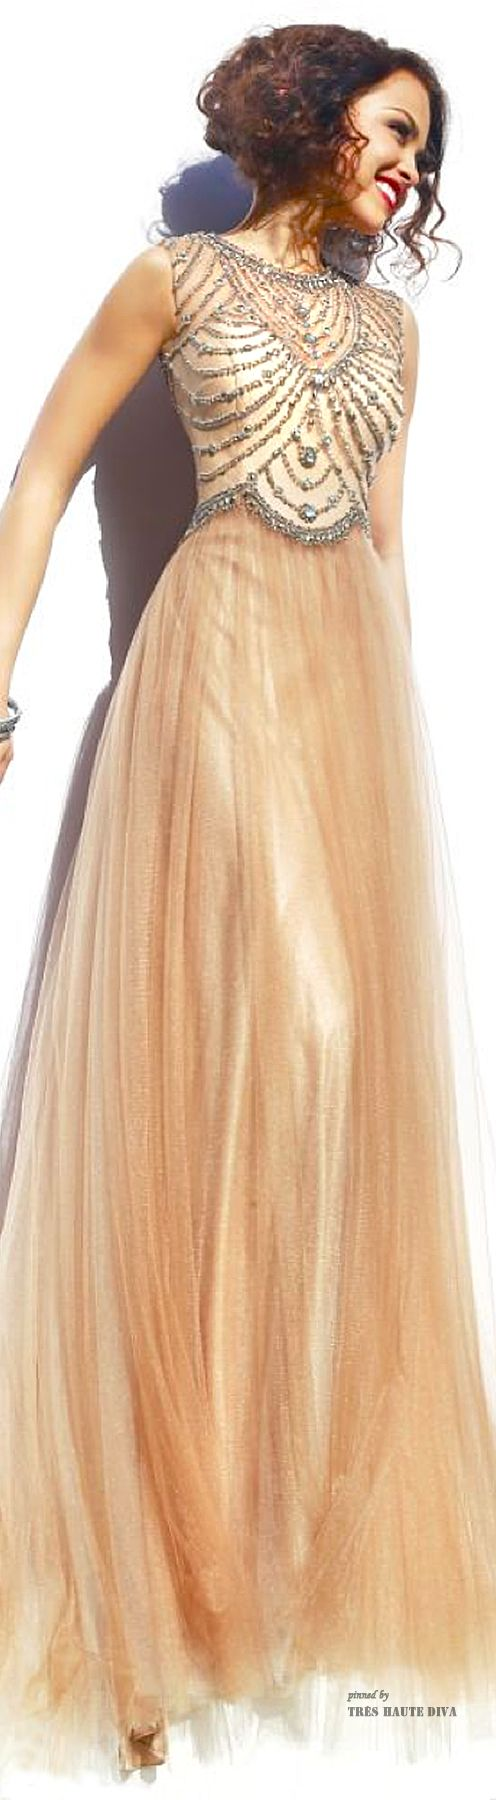 """prom dress. stunning!!! ♡♥♡♥ Thanks, Pinterest Pinners, for stopping by, viewing, re-pinning, & following my boards. Have a beautiful day! ^..^ and """"Feel free to share on Pinterest ^..^ #topfashion #fashionandclothingblog #fashionupdates *•.¸♡¸.•**•.¸ ┊ ┊ ┊ ┊ ┊more prom dresses: http://999dresses.blogspot.com/"""